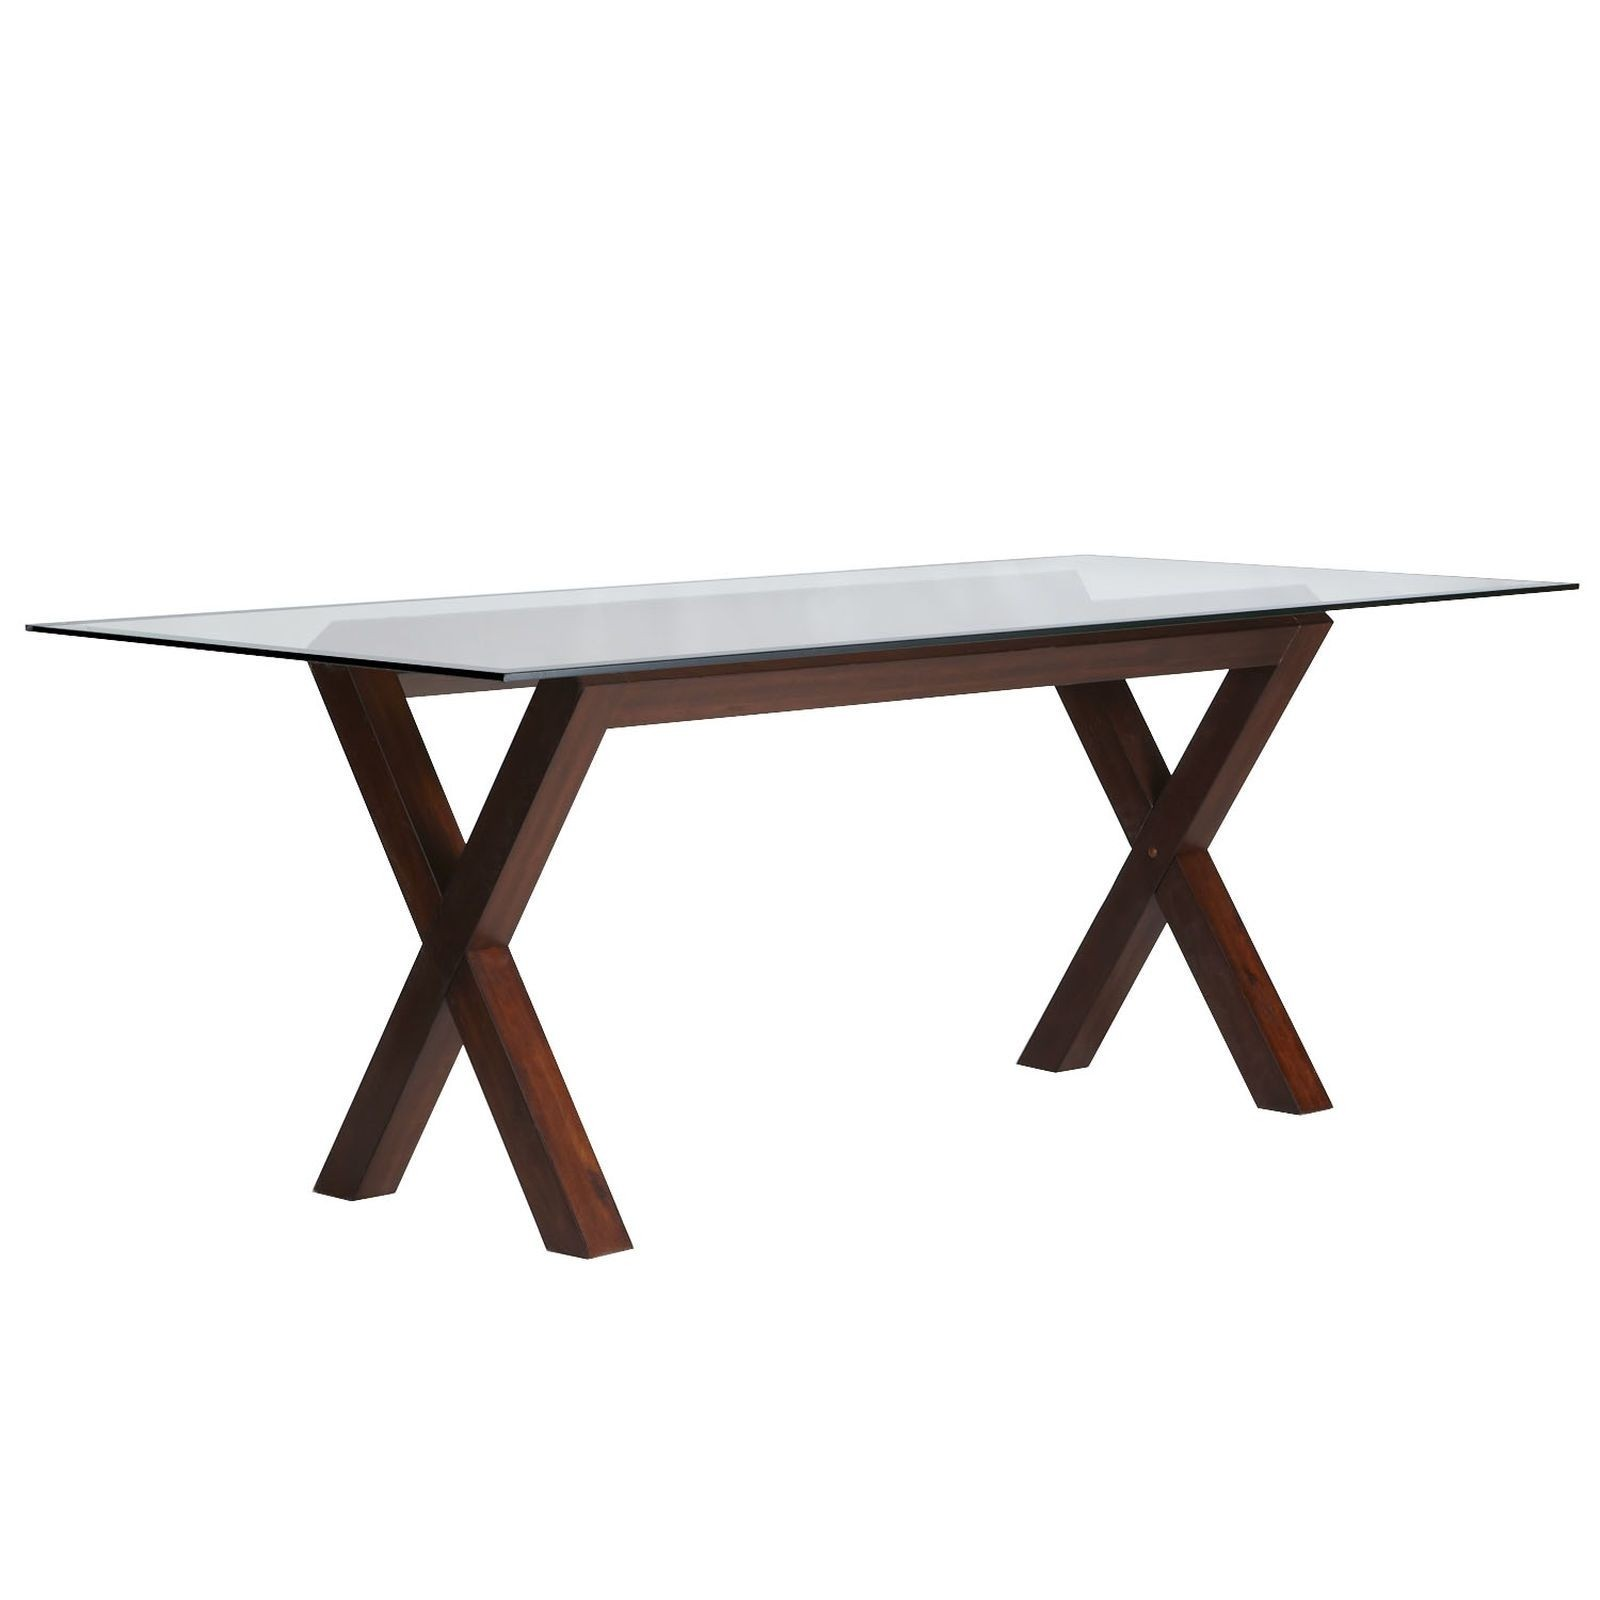 Ordinaire Pedestal Table Base For Glass Top